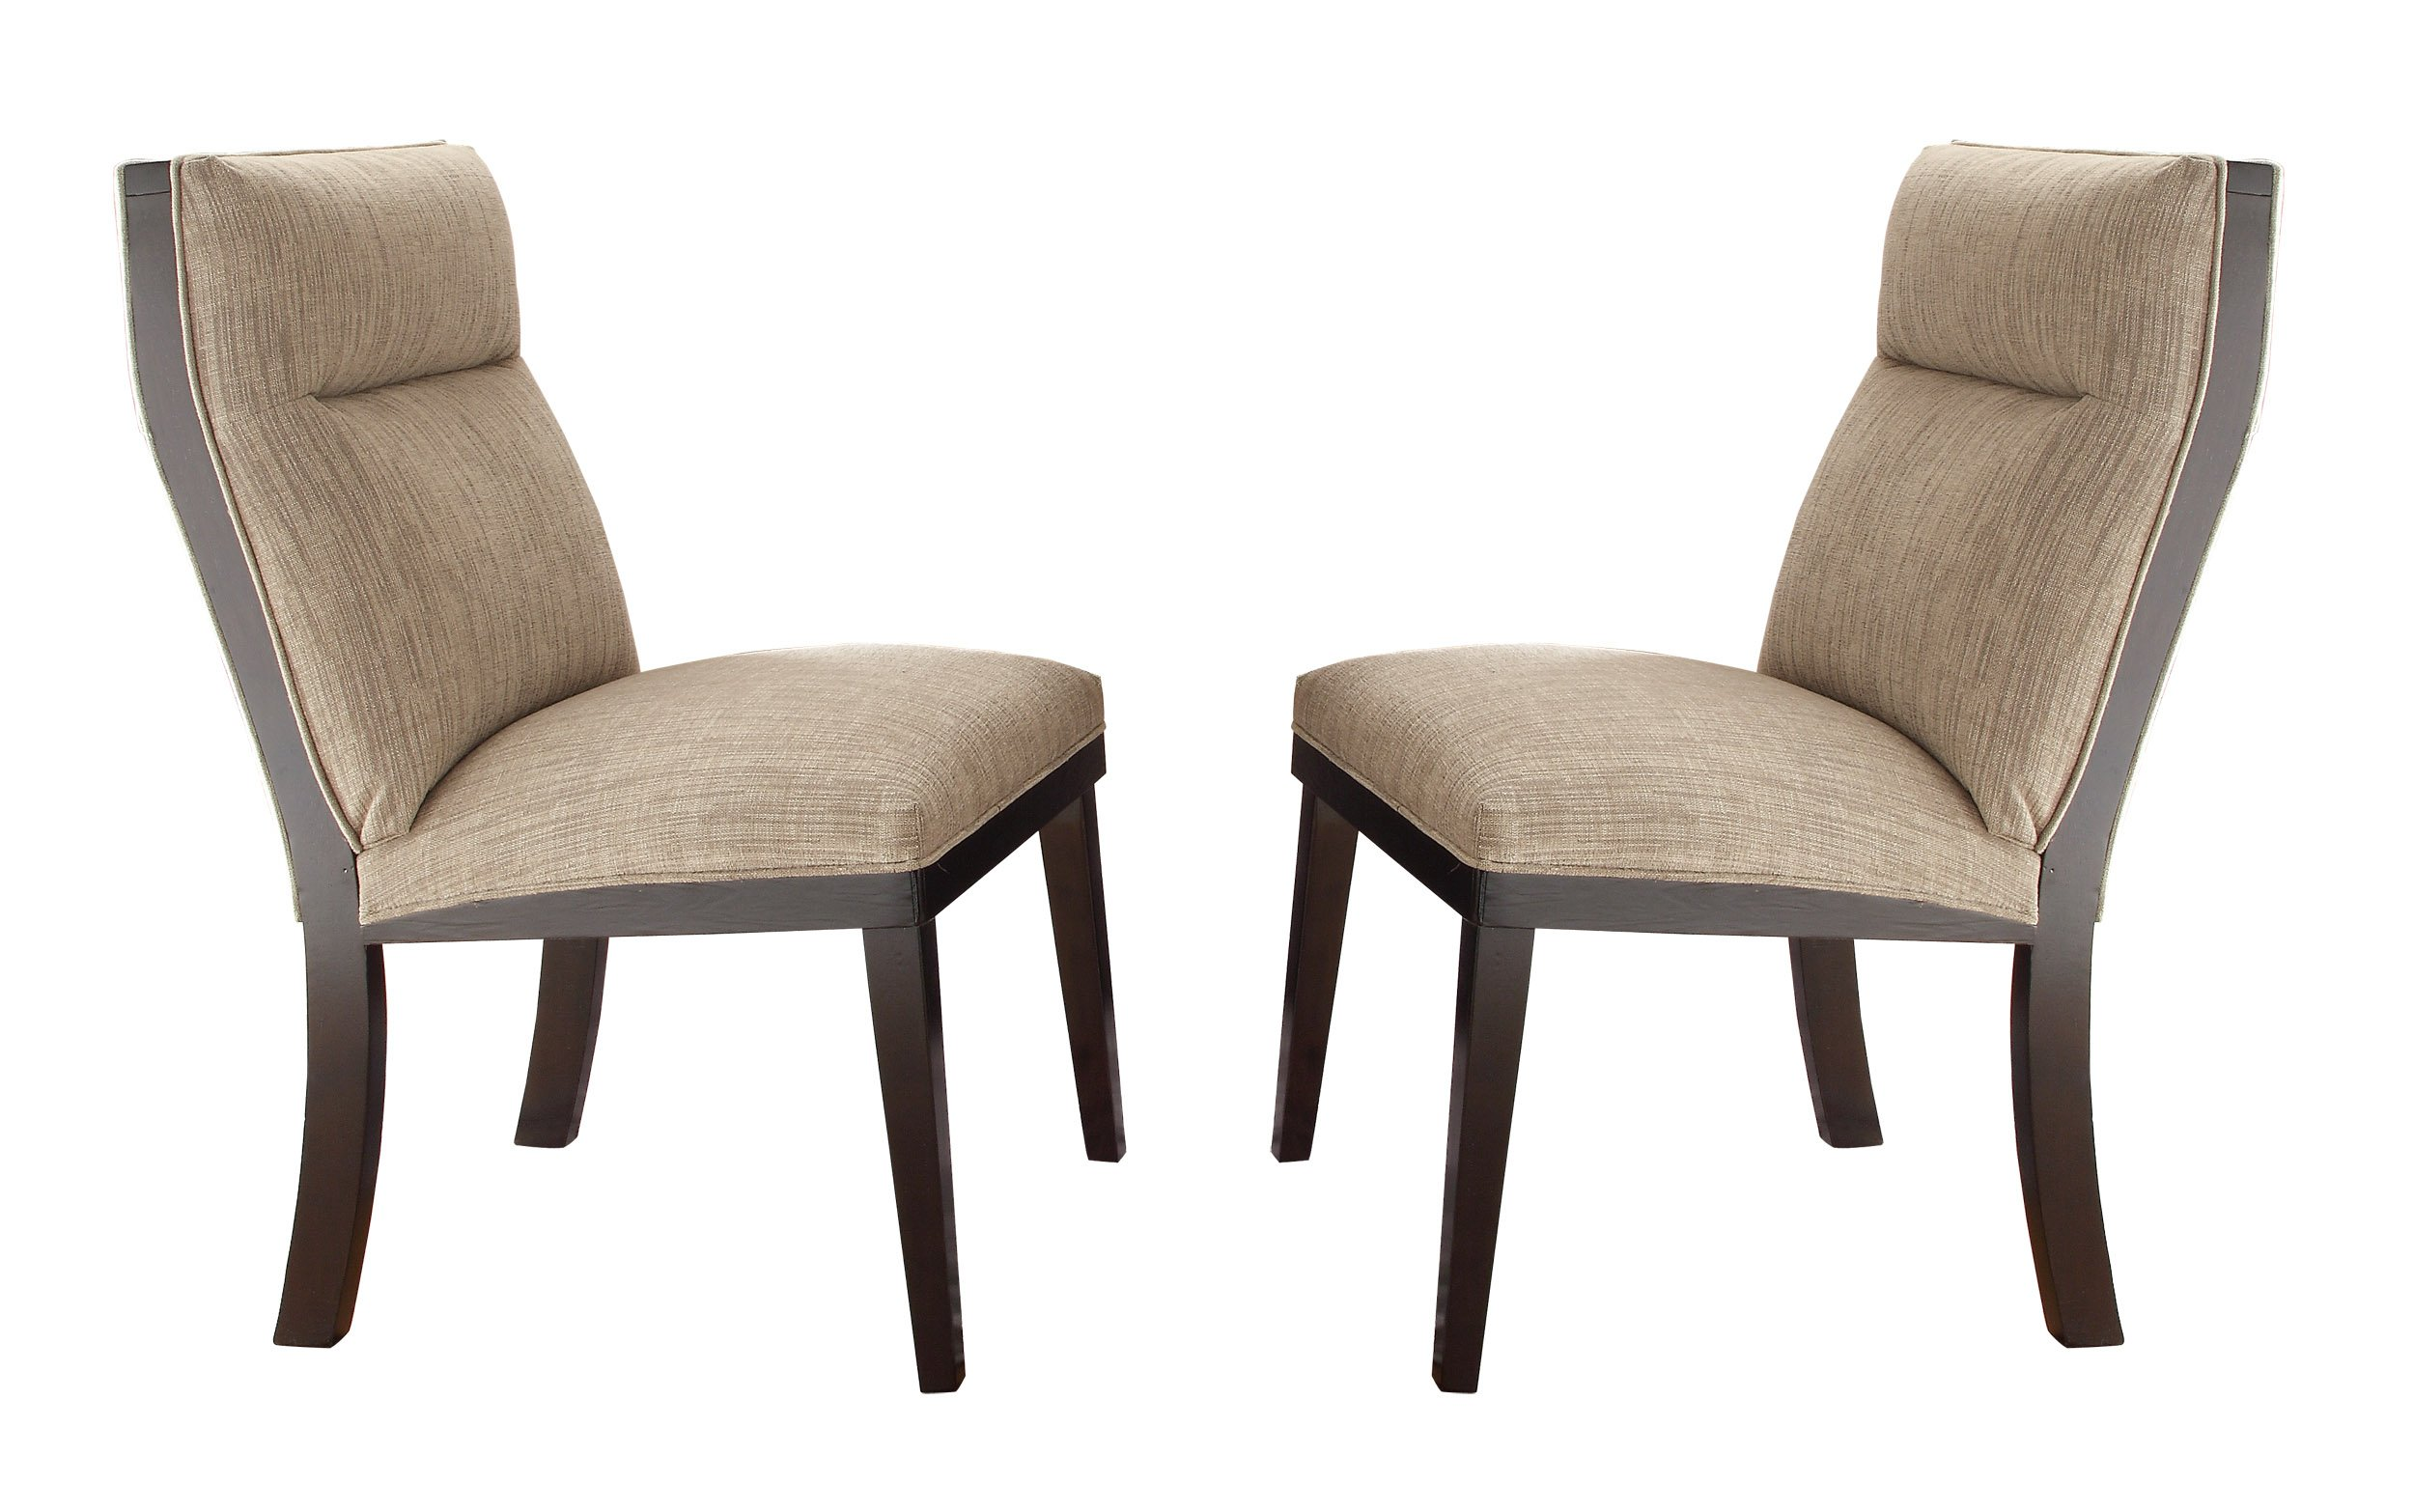 Homelegance Tanager Contemporary Dining Chairs with Padded Seat and Back (Set of 2), Espresso